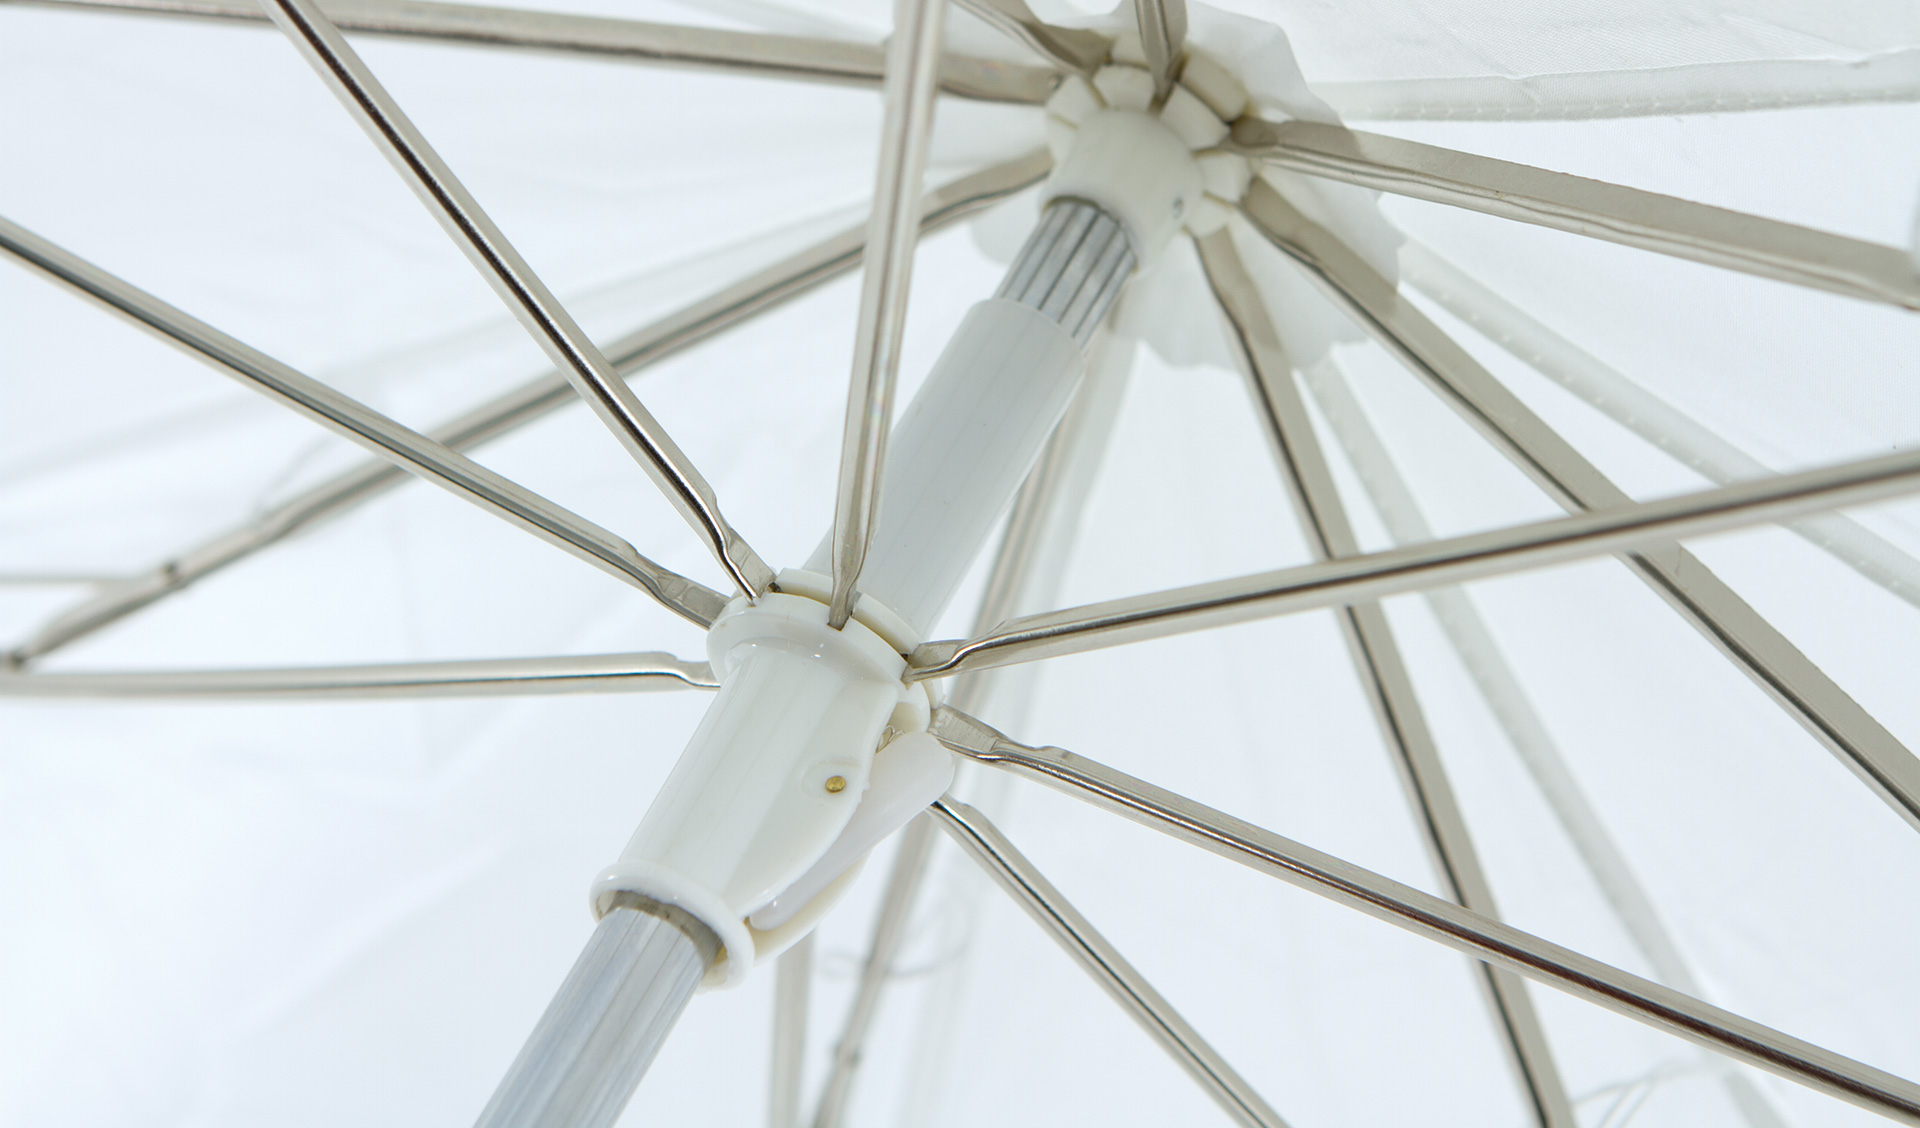 Strong Steel Framework - Constructed with a steel shaft and ribs, these umbrellas are reliable when used in both the studio and out on location.